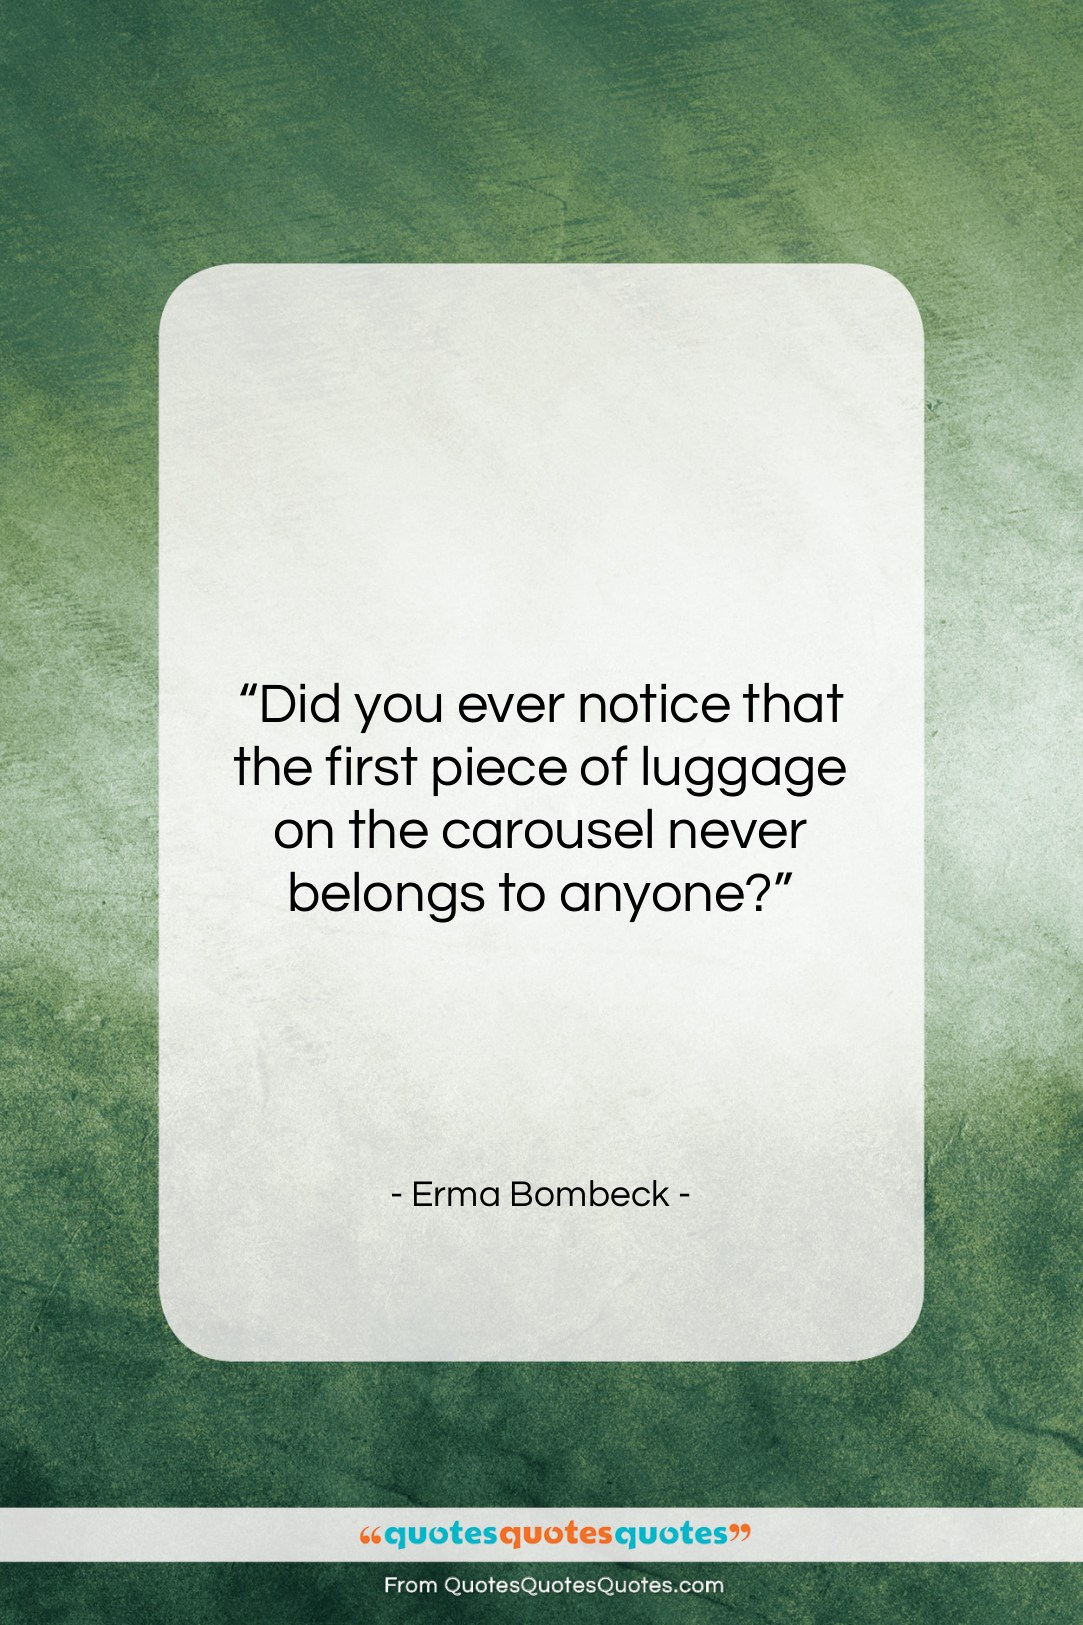 """Erma Bombeck quote: """"Did you ever notice that the first…""""- at QuotesQuotesQuotes.com"""